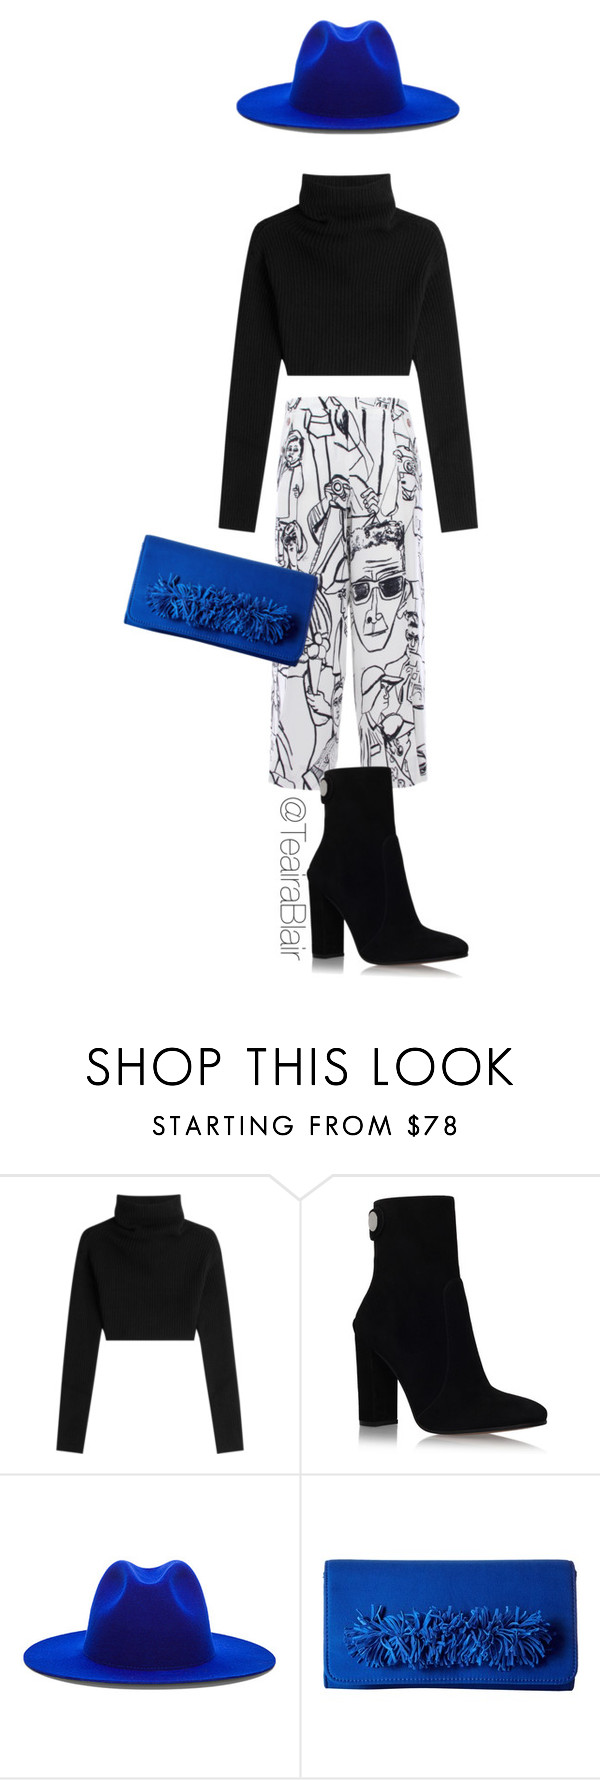 """LITTLE POP OF BLUE."" by teairablair ❤ liked on Polyvore featuring Valentino, Emilio Pucci, Gianvito Rossi, Études and Steve Madden"